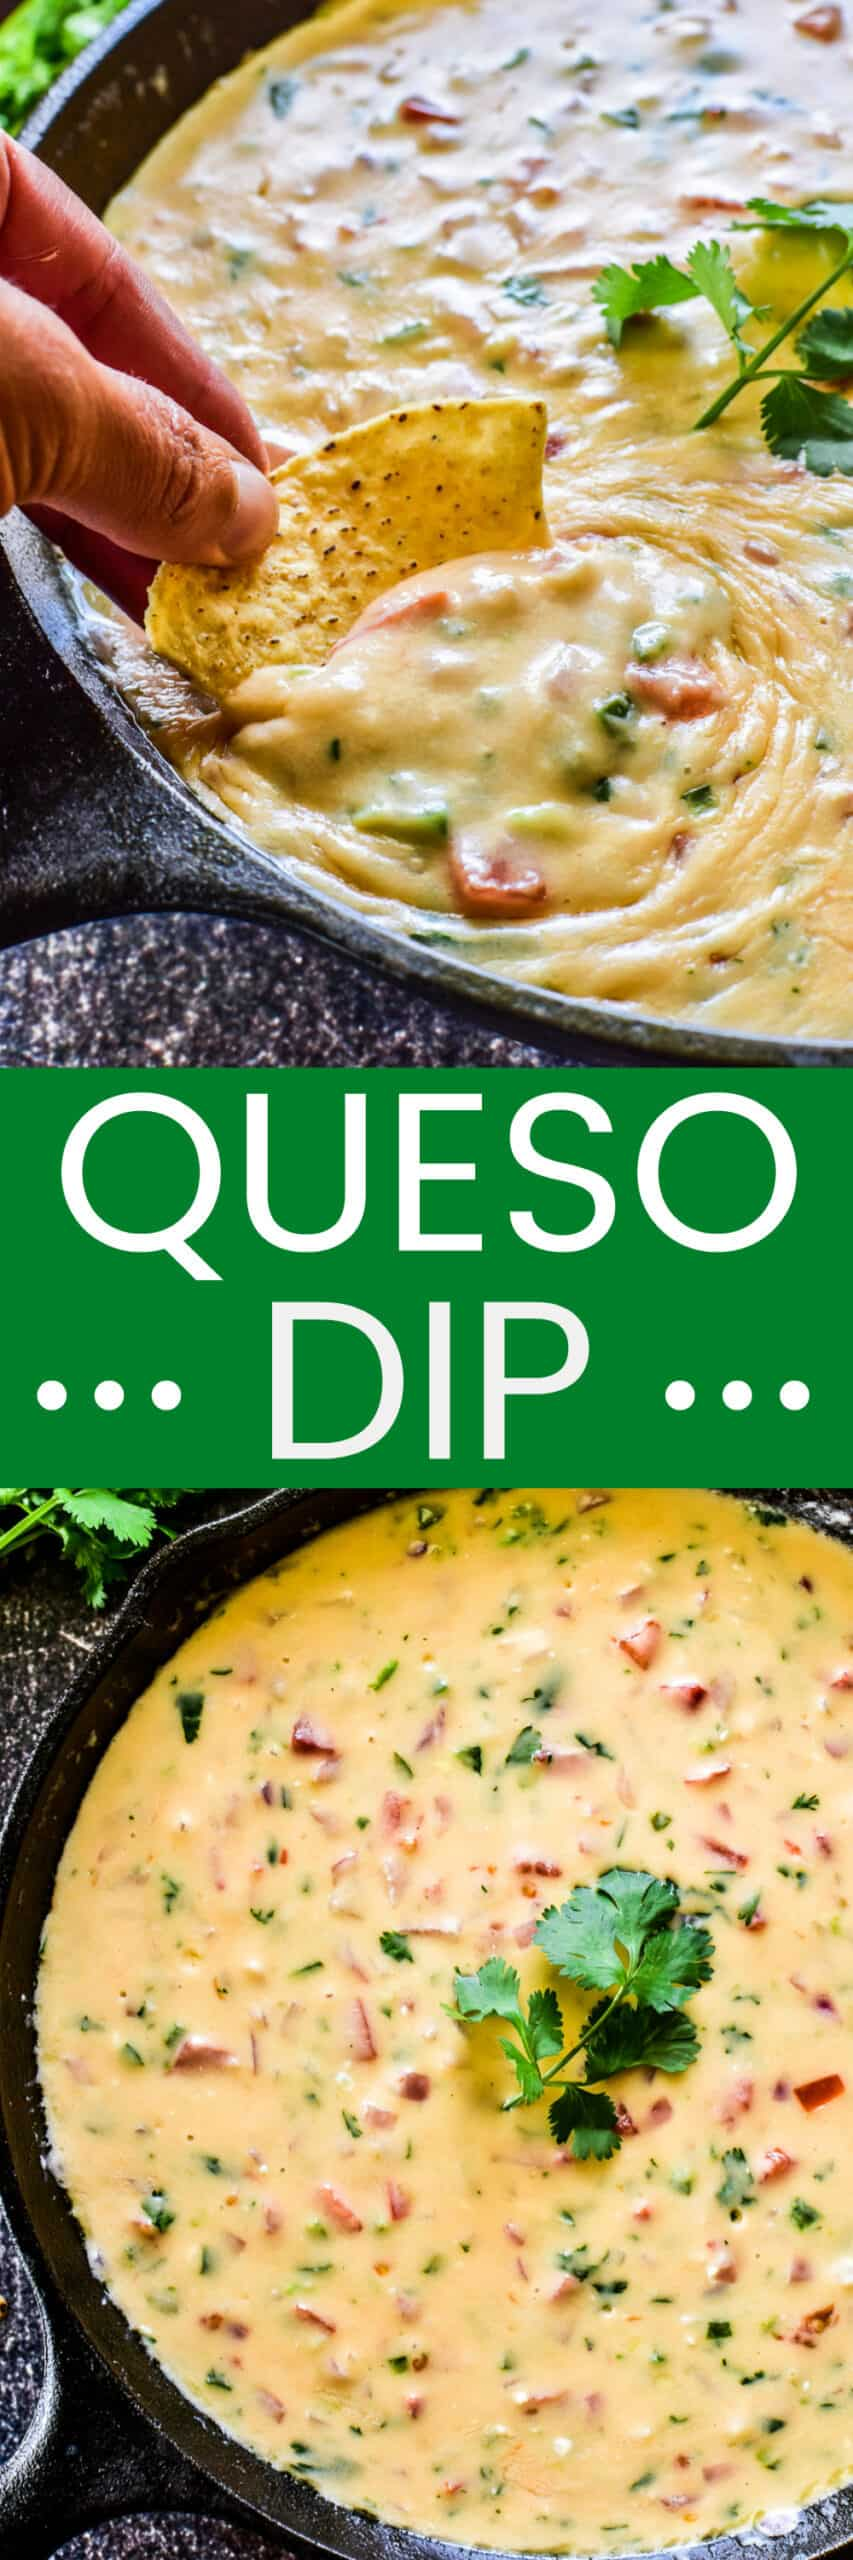 Collage image of Queso Dip